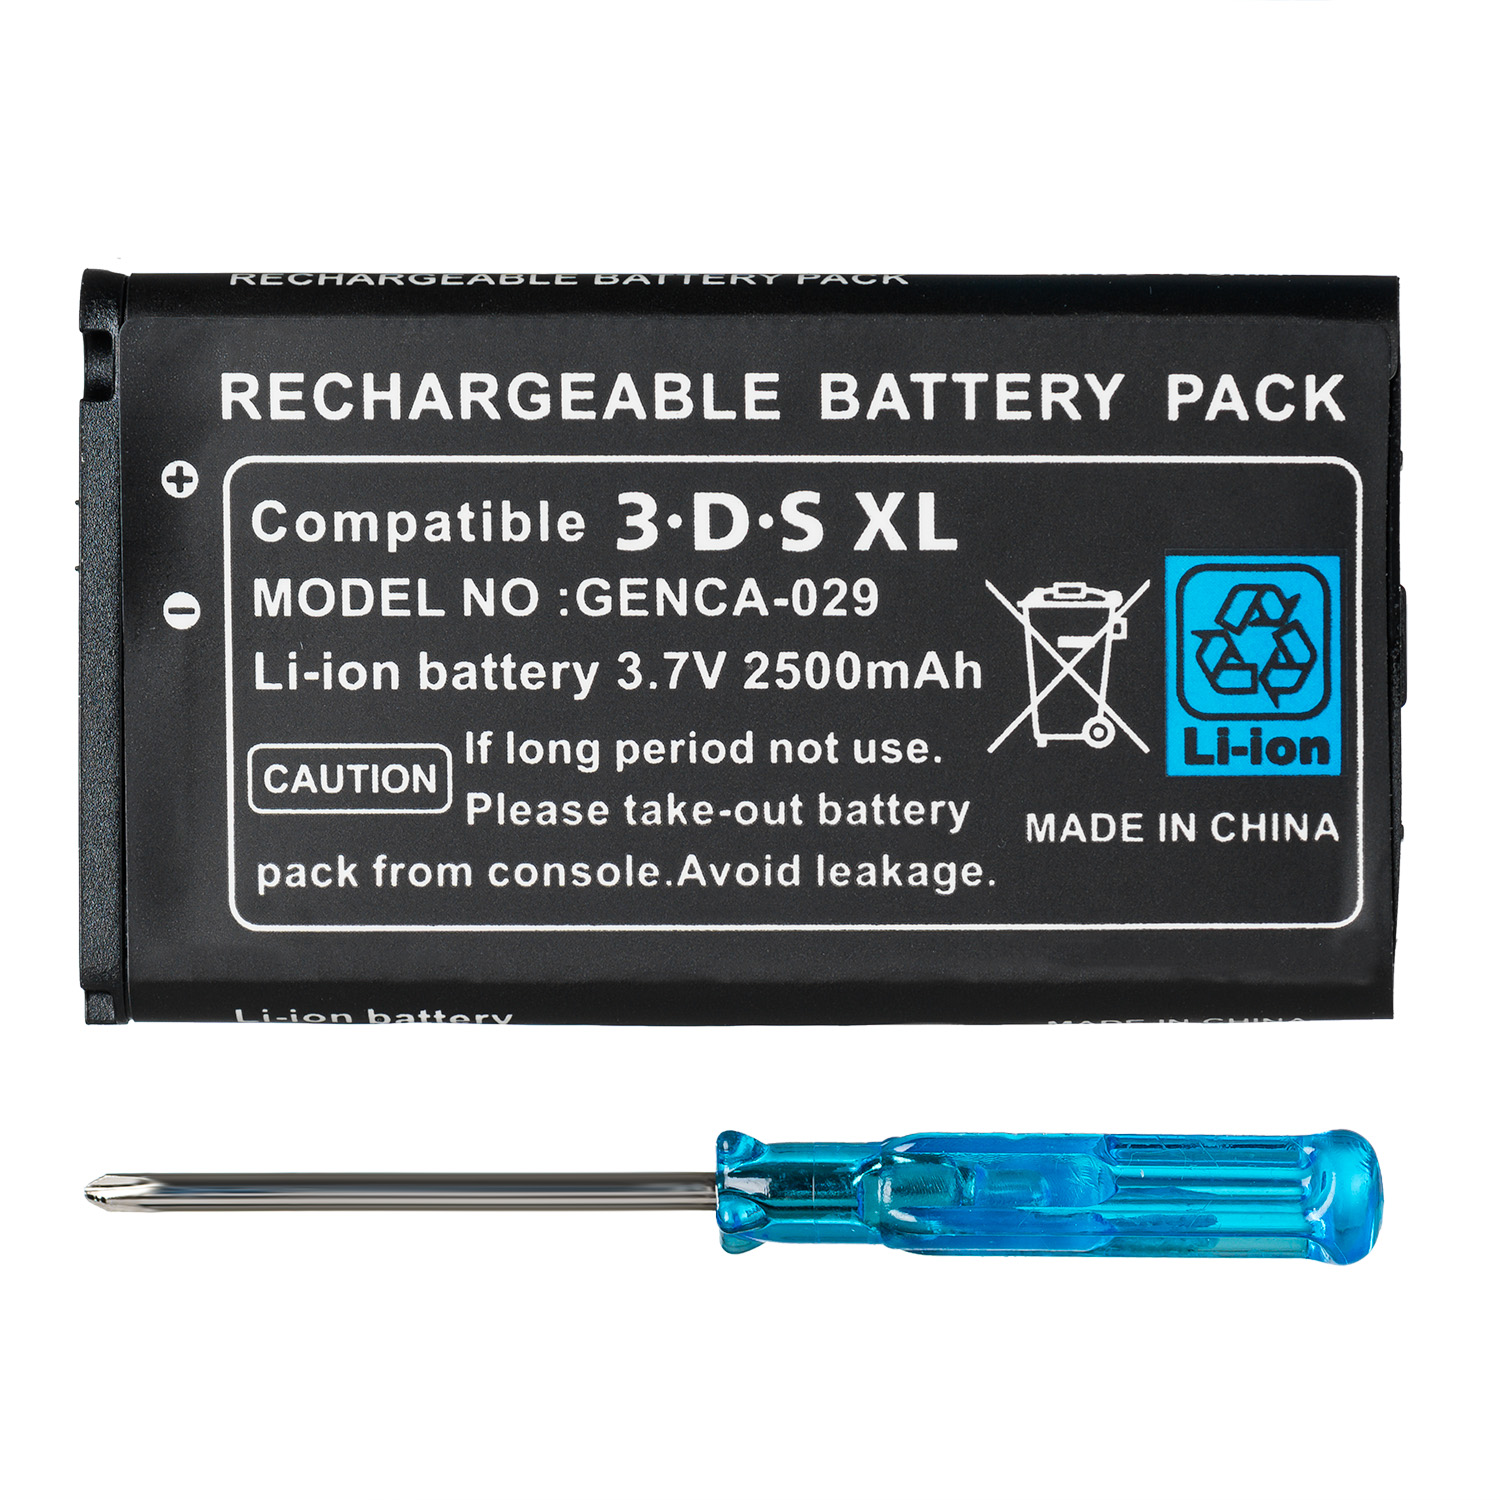 OSTENT 2500mAh 3.7V Rechargeable Lithium-ion <font><b>Battery</b></font> + Tool Kit <font><b>Pack</b></font> for Nintendo <font><b>3DS</b></font> LL/XL image